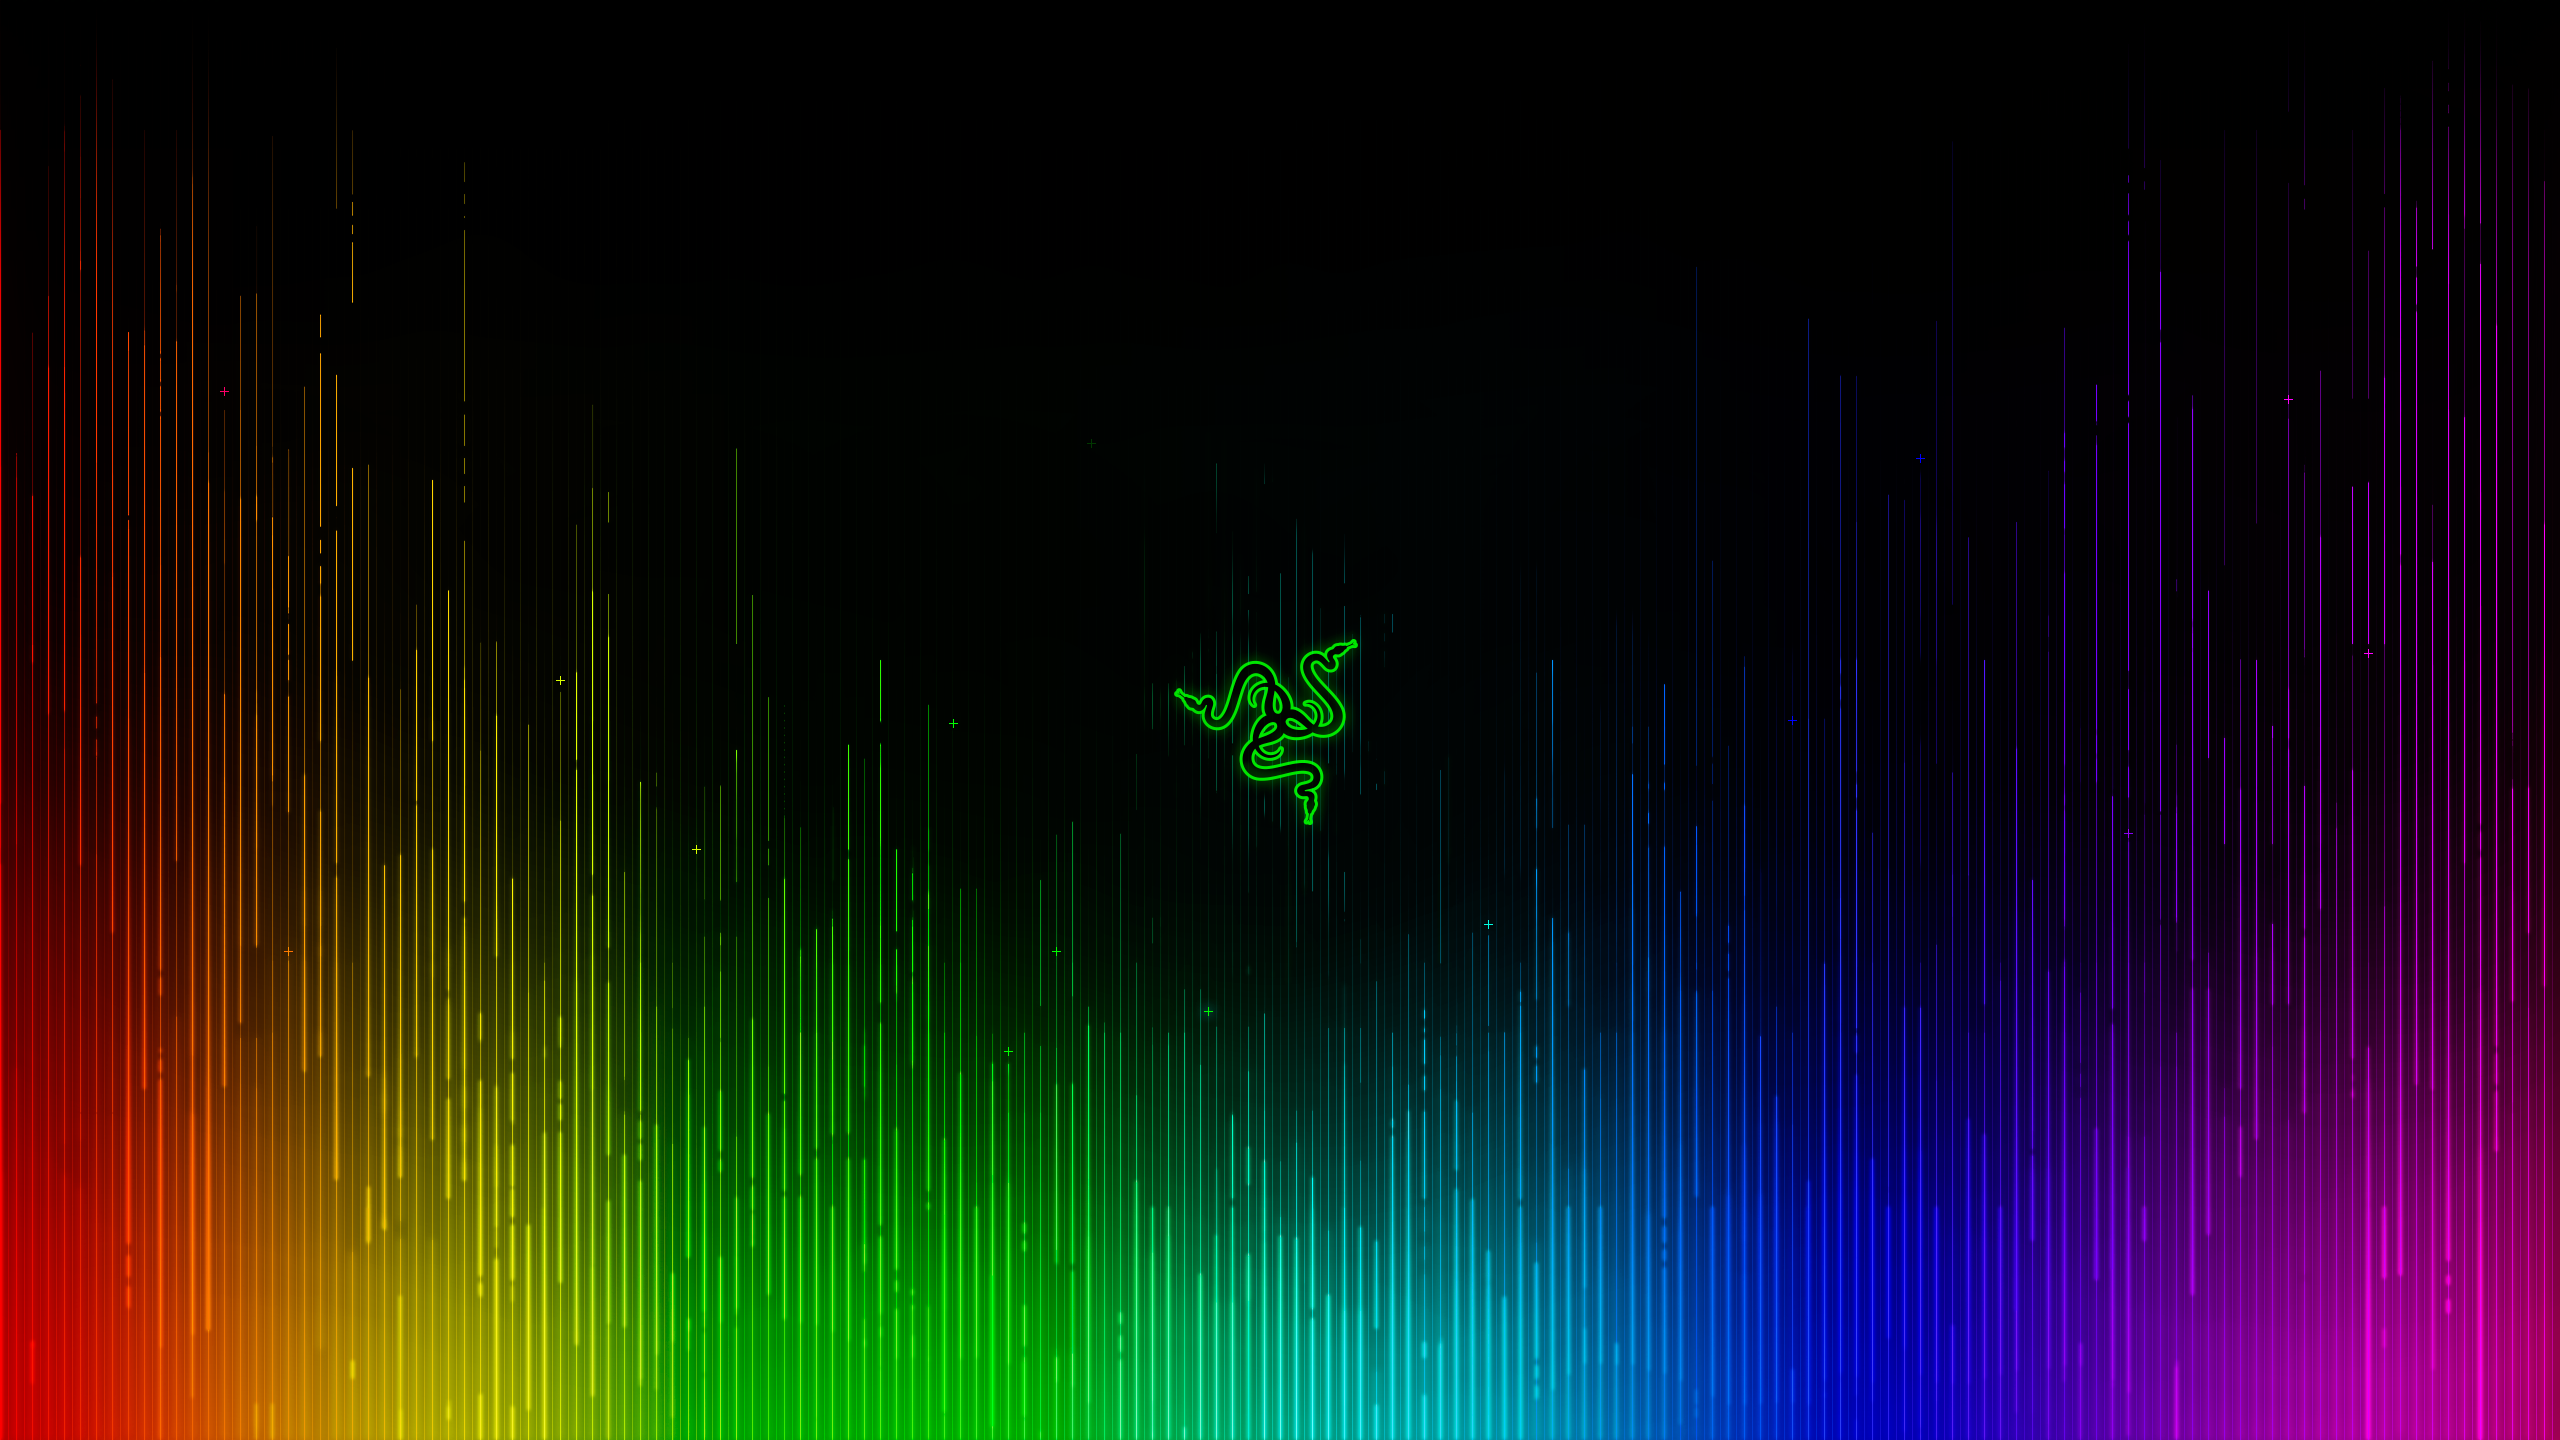 Free Images Razer Wallpapers 4k Gaming Wallpaper Gaming Wallpapers Computer Wallpaper Desktop Wallpapers